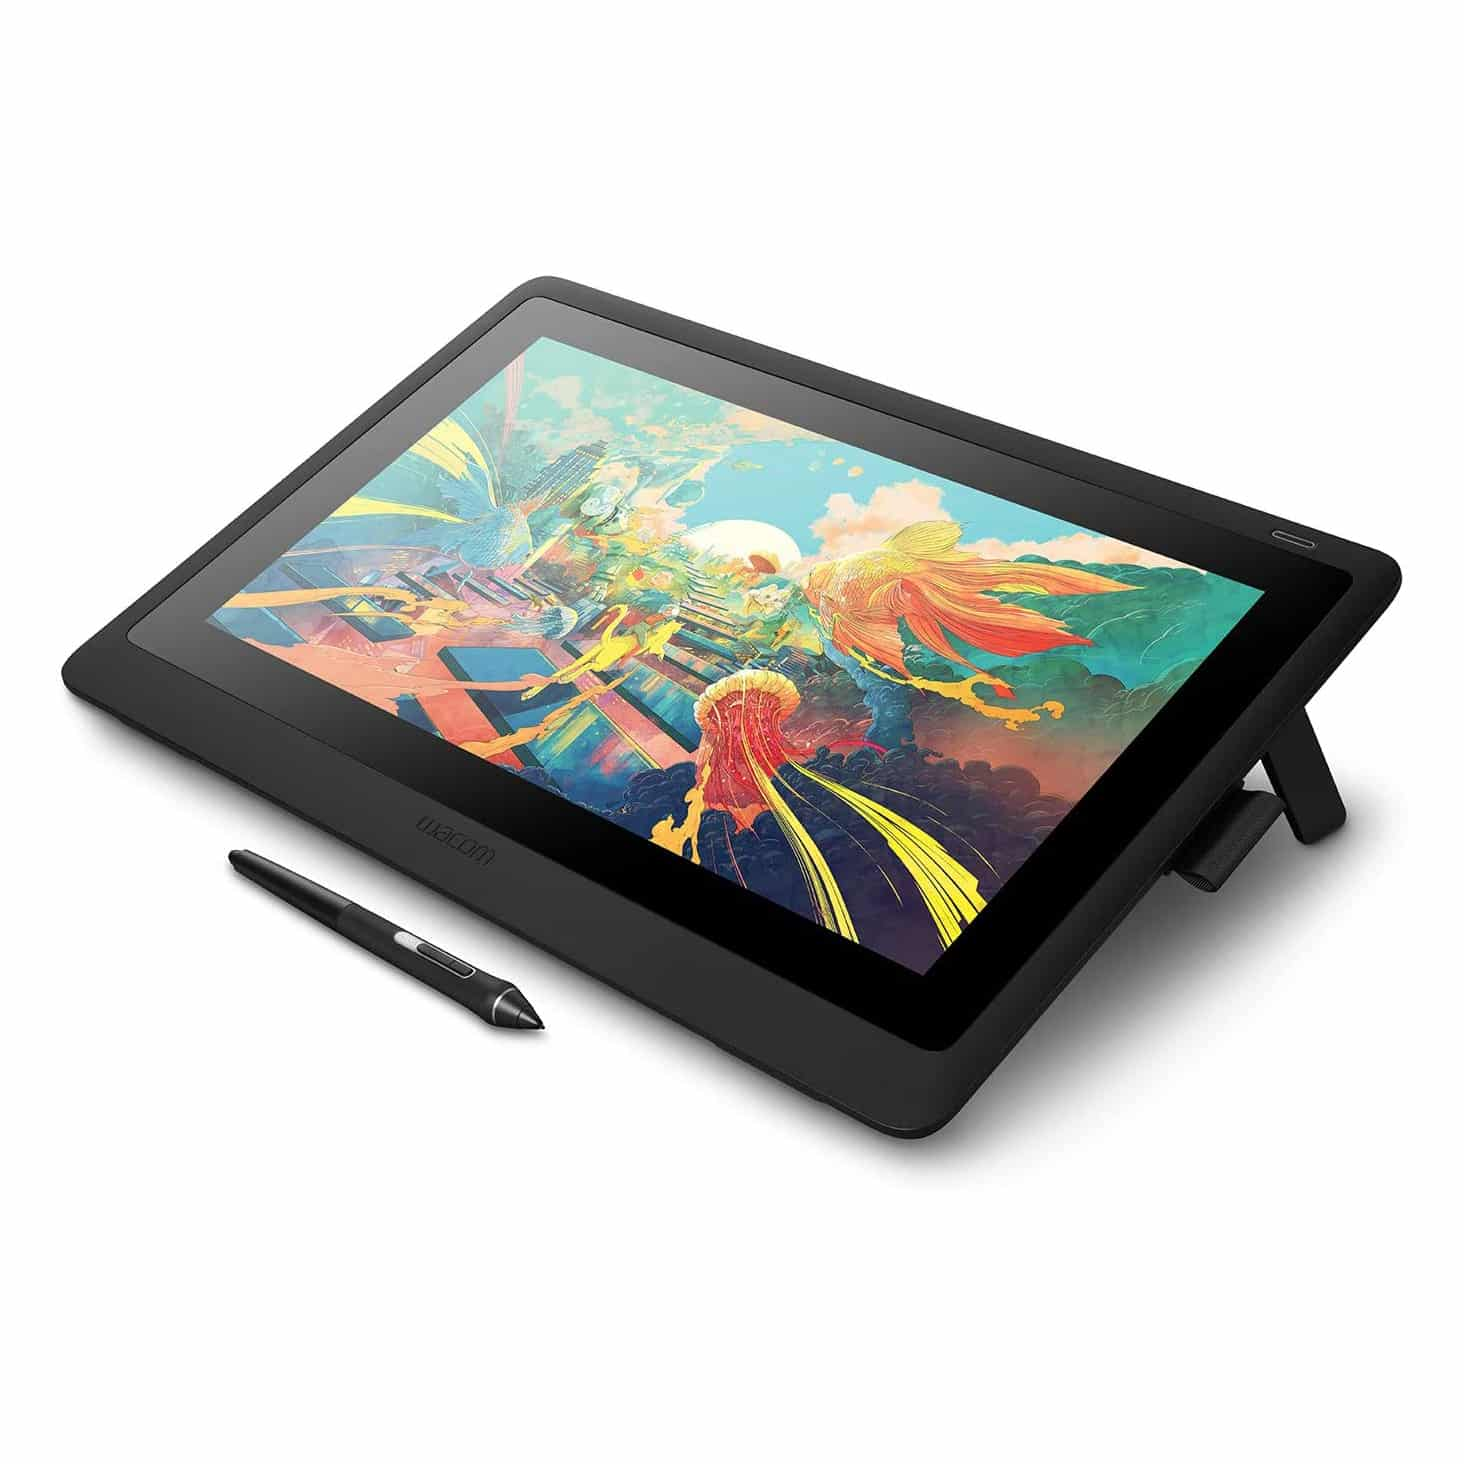 Wacom Cintiq DTK1660K0A Drawing Tablet with Screen